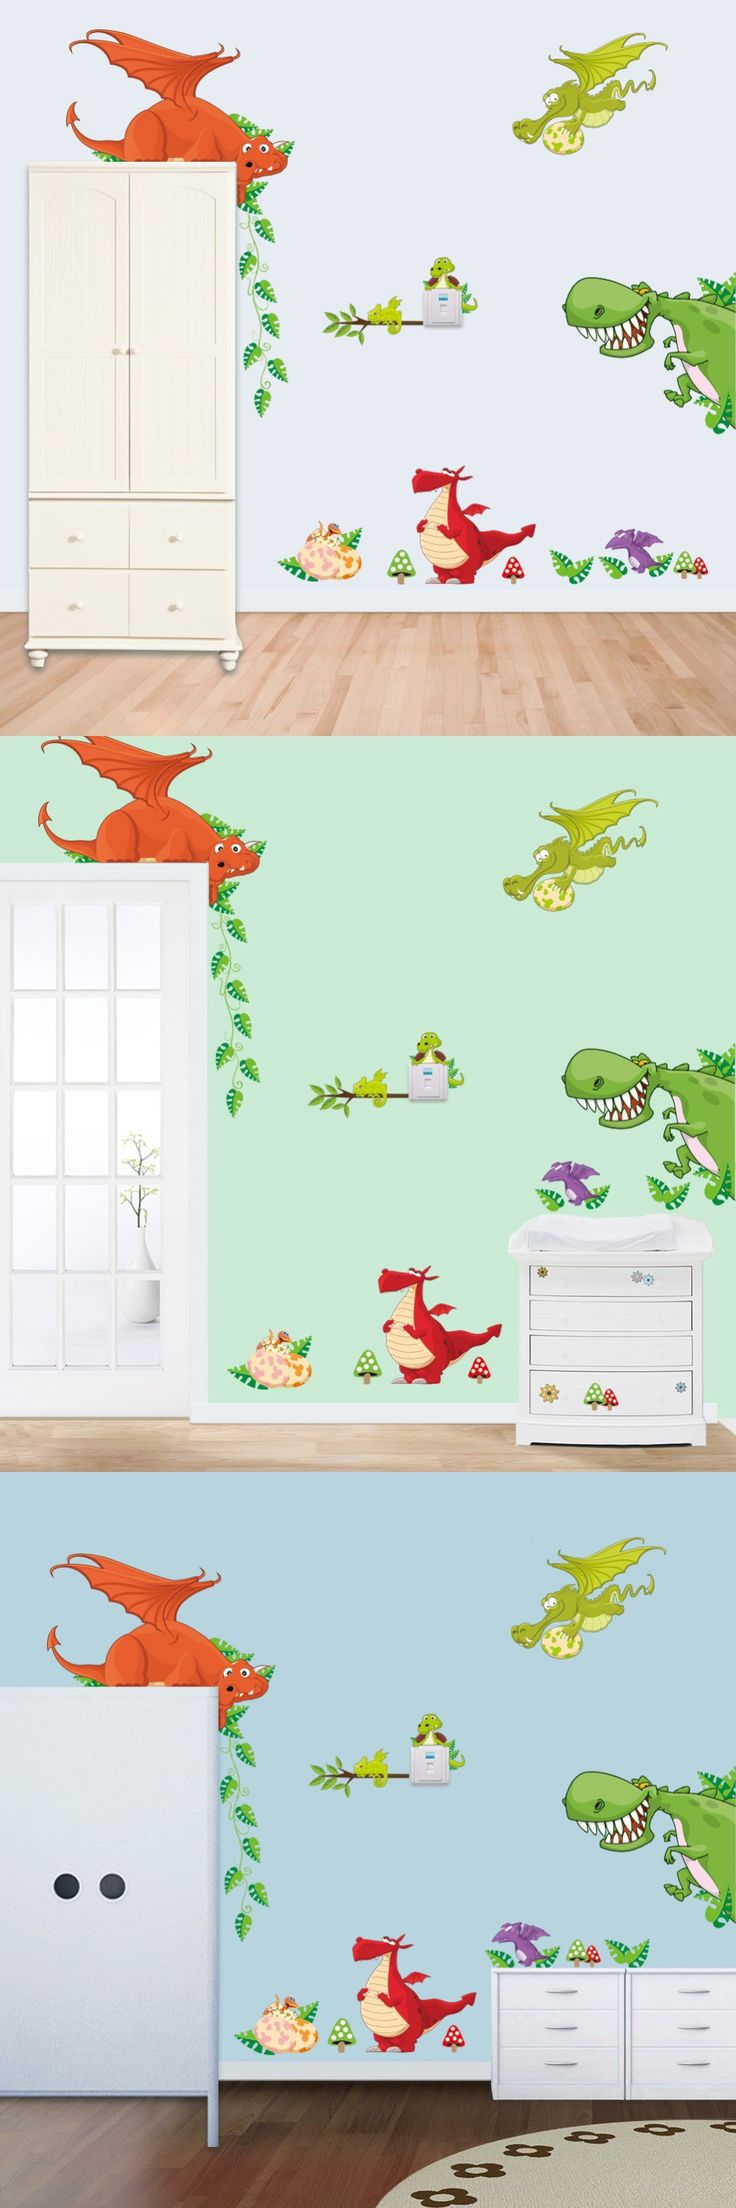 Best 25 dinosaur wall stickers ideas on pinterest for Dinosaur wall decals for kids rooms